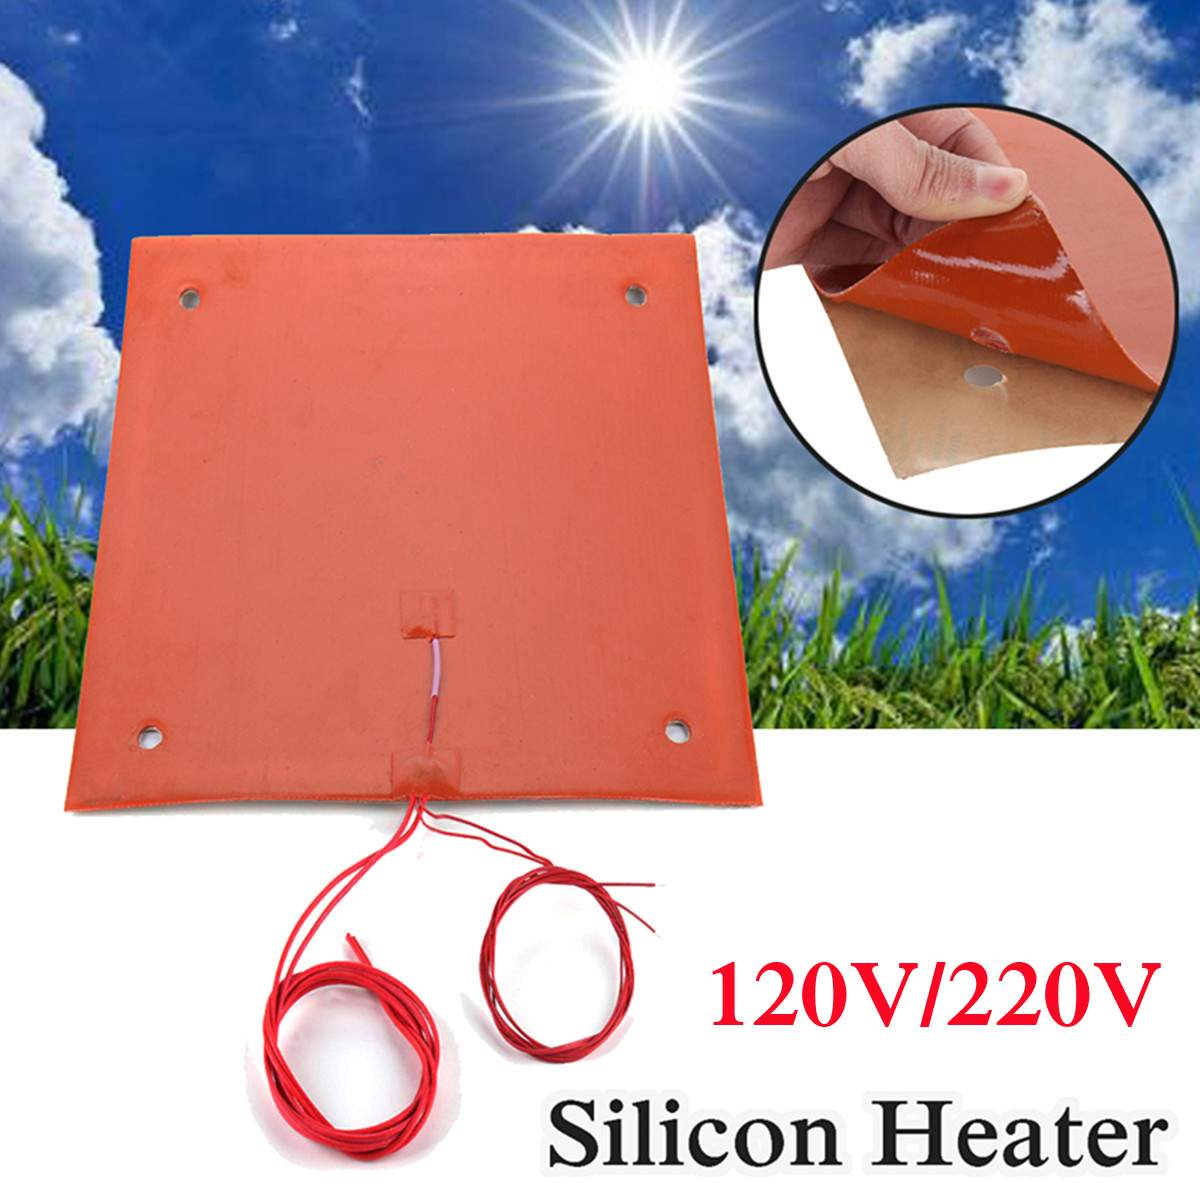 750w 120v/220v Flexible Waterproof Silicone Heated Bed Heating Heater Pad for CR-10 3D Printer Bed Holes 310*310mm750w 120v/220v Flexible Waterproof Silicone Heated Bed Heating Heater Pad for CR-10 3D Printer Bed Holes 310*310mm